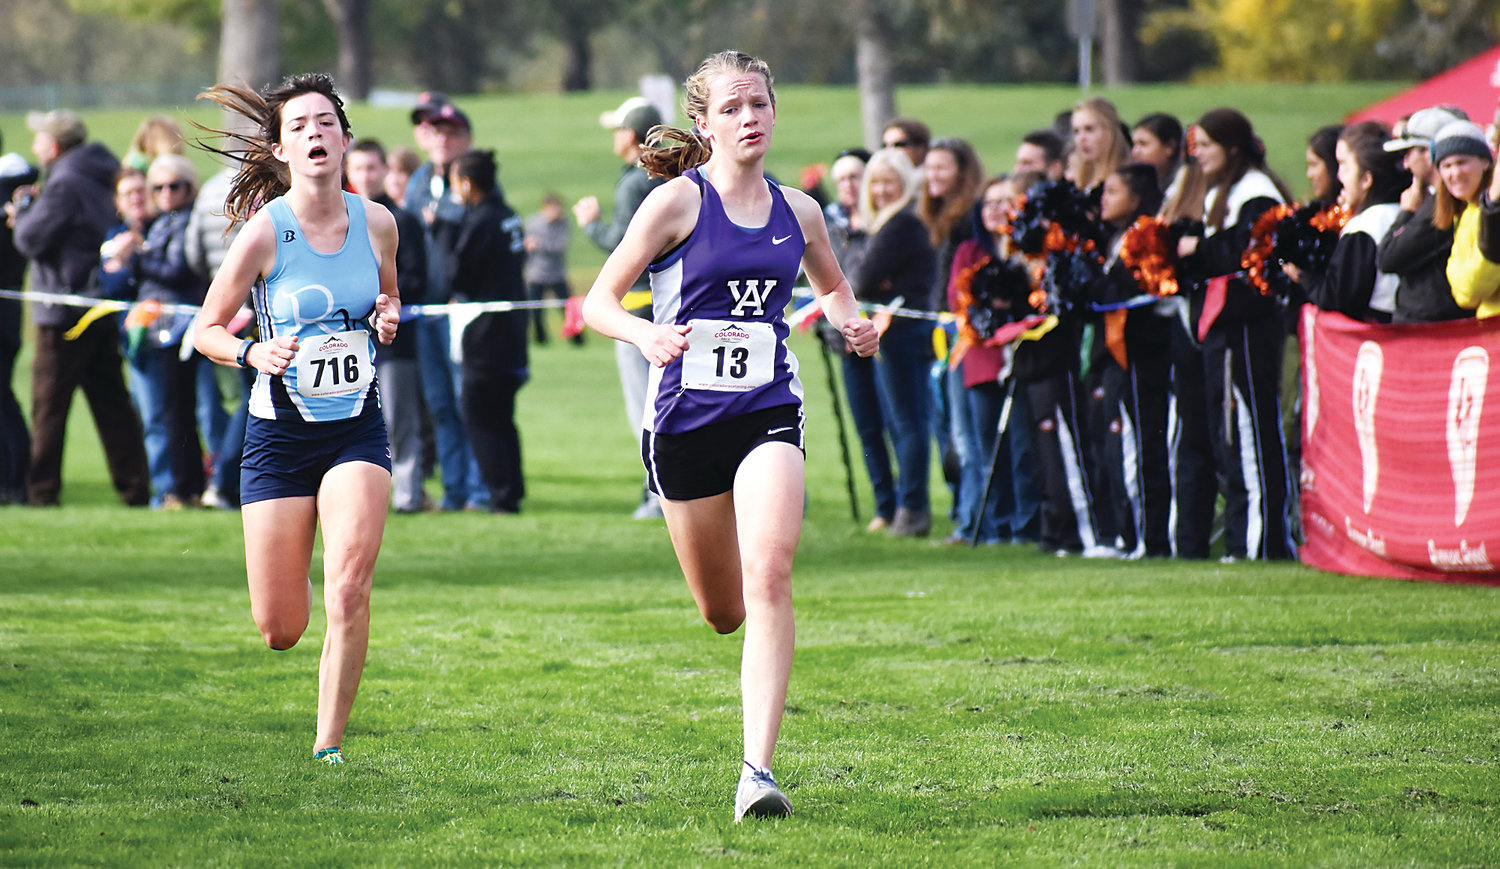 Arvada West freshman Ashlyn Craig (13) and Ralston Valley junior Cassandra Sterns (716) sprint toward the finish line during the Class 5A girls race during the Jeffco League cross country championships Thursday, Oct. 11, at Clement Park. Craig and Sterns both earned first time all-conference honors finishing sixth and seventh. A-West finished second in the team standings while Ralston Valley placed third.